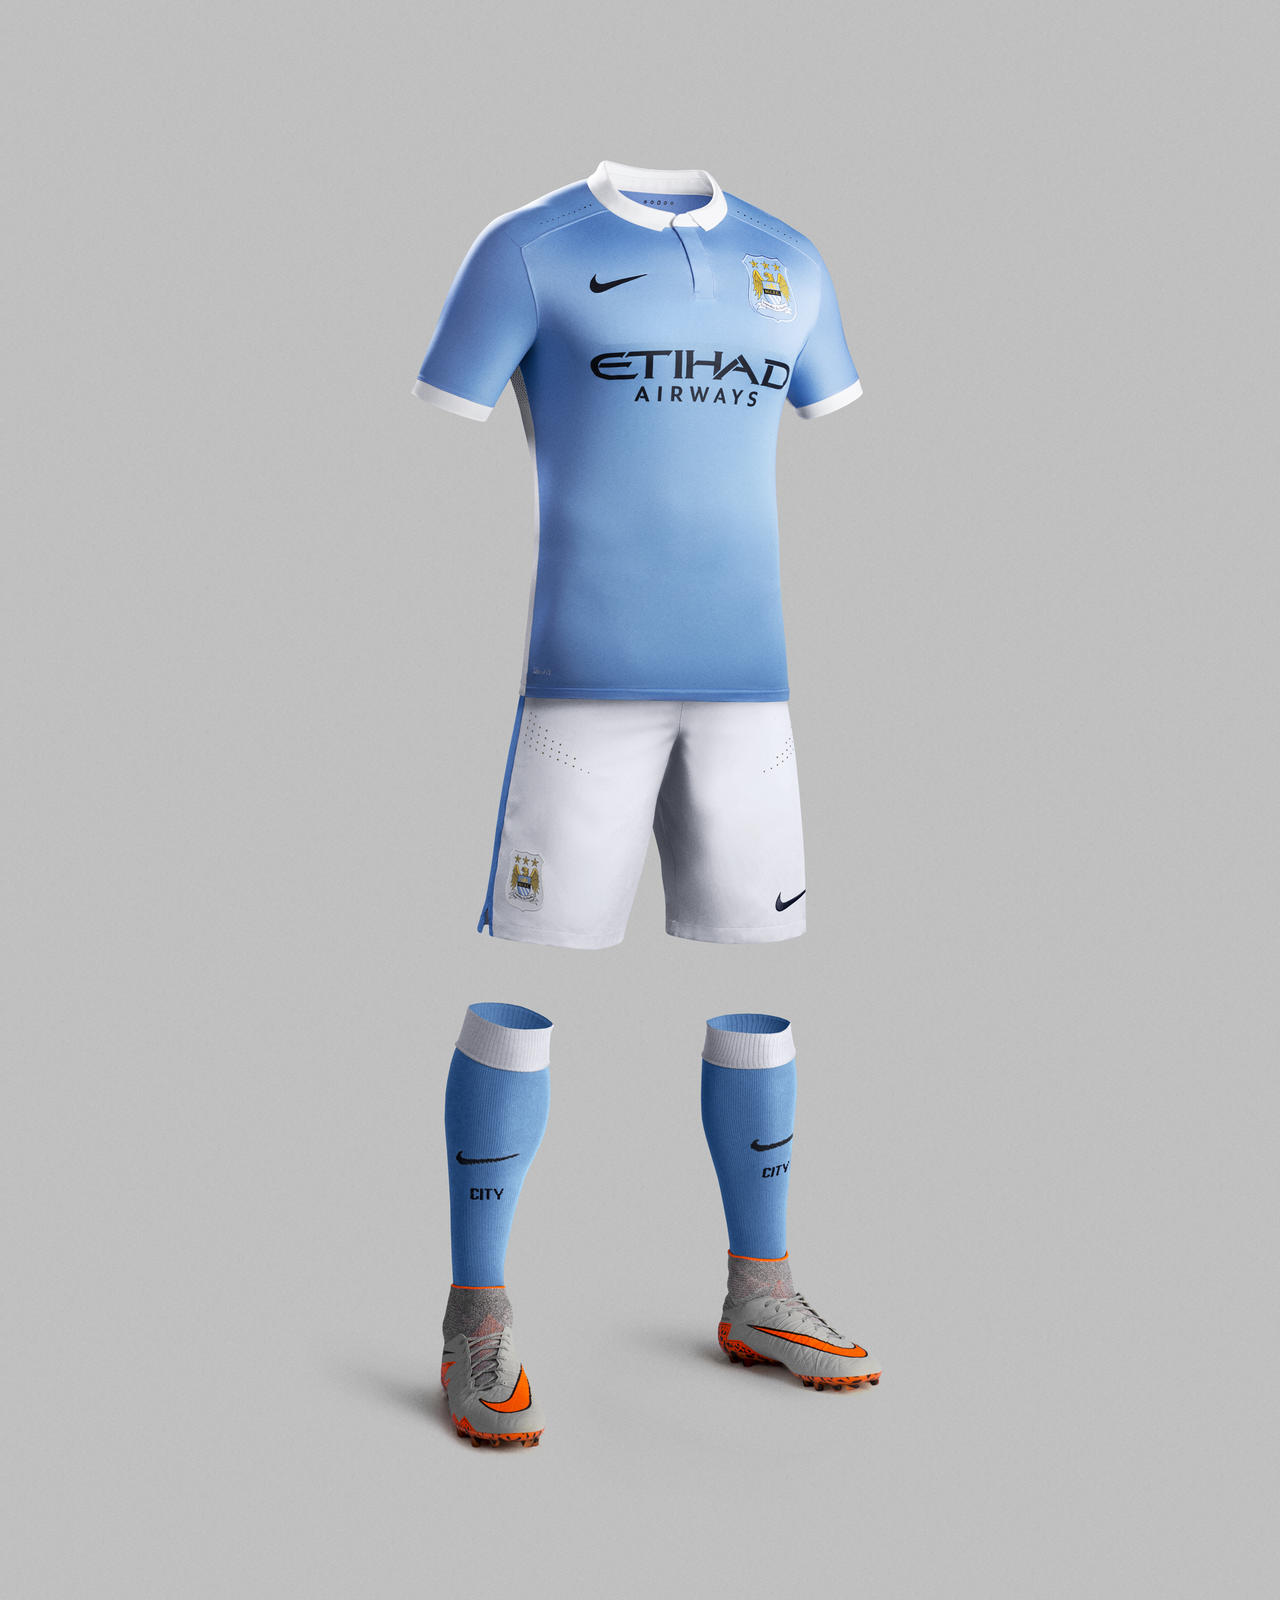 Manchester City 2015-16 Home Kit Brings Nike Football Performance Innovation to a Timeless Look ...